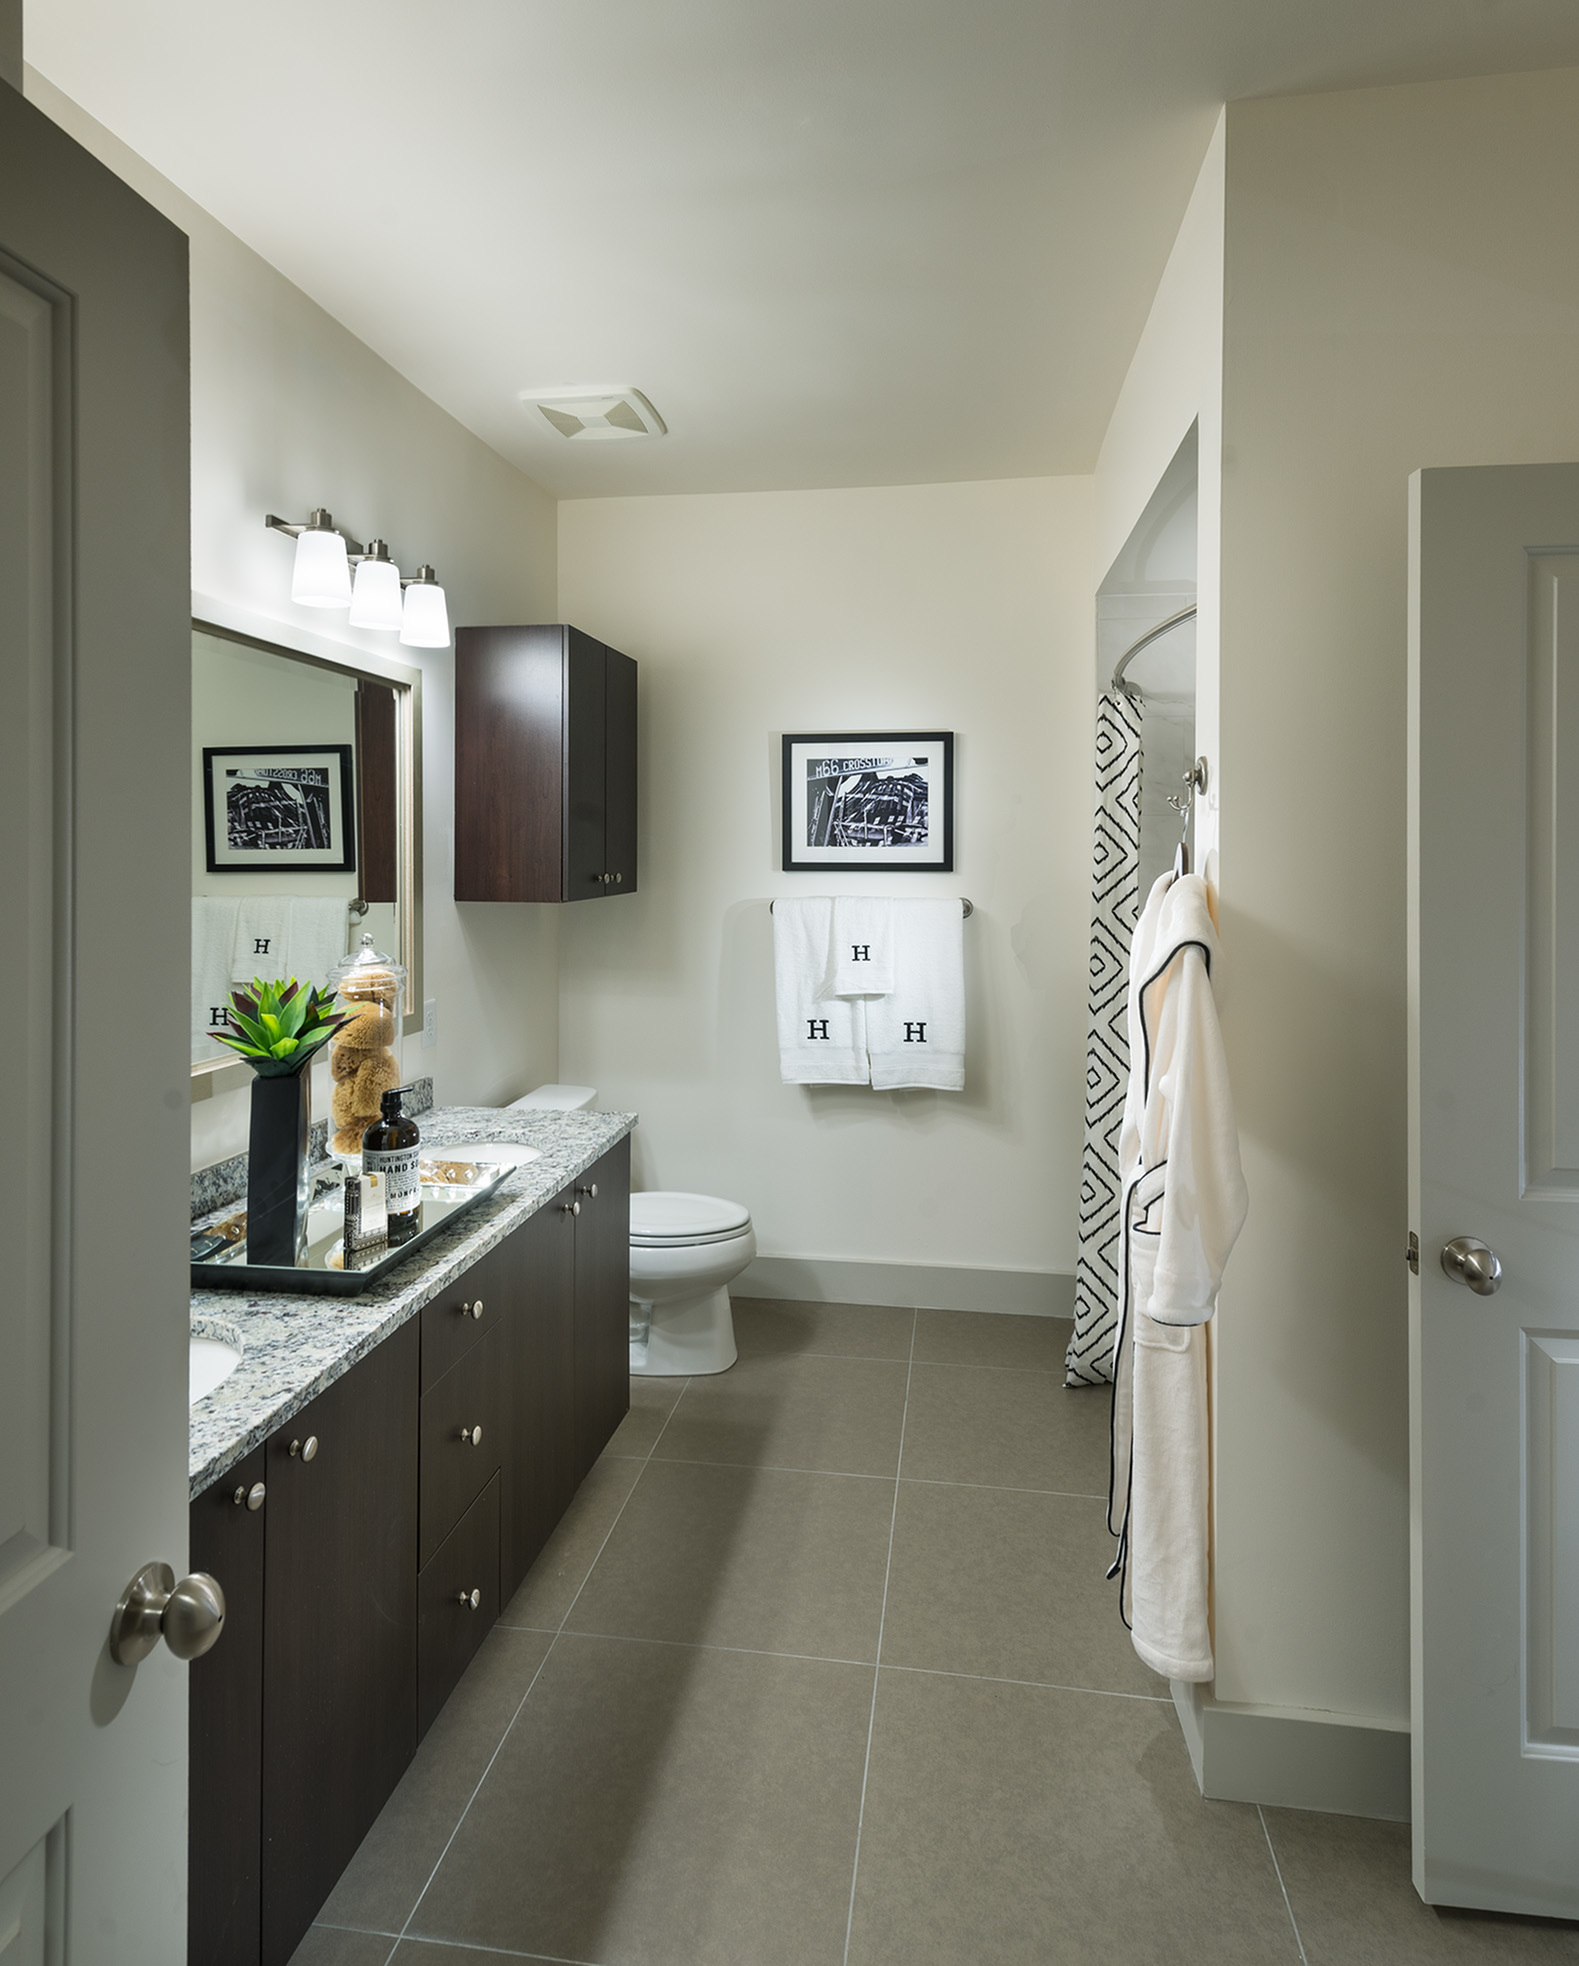 Image of Spa-inspired bathrooms with large soaking tub for Hanover at Andover